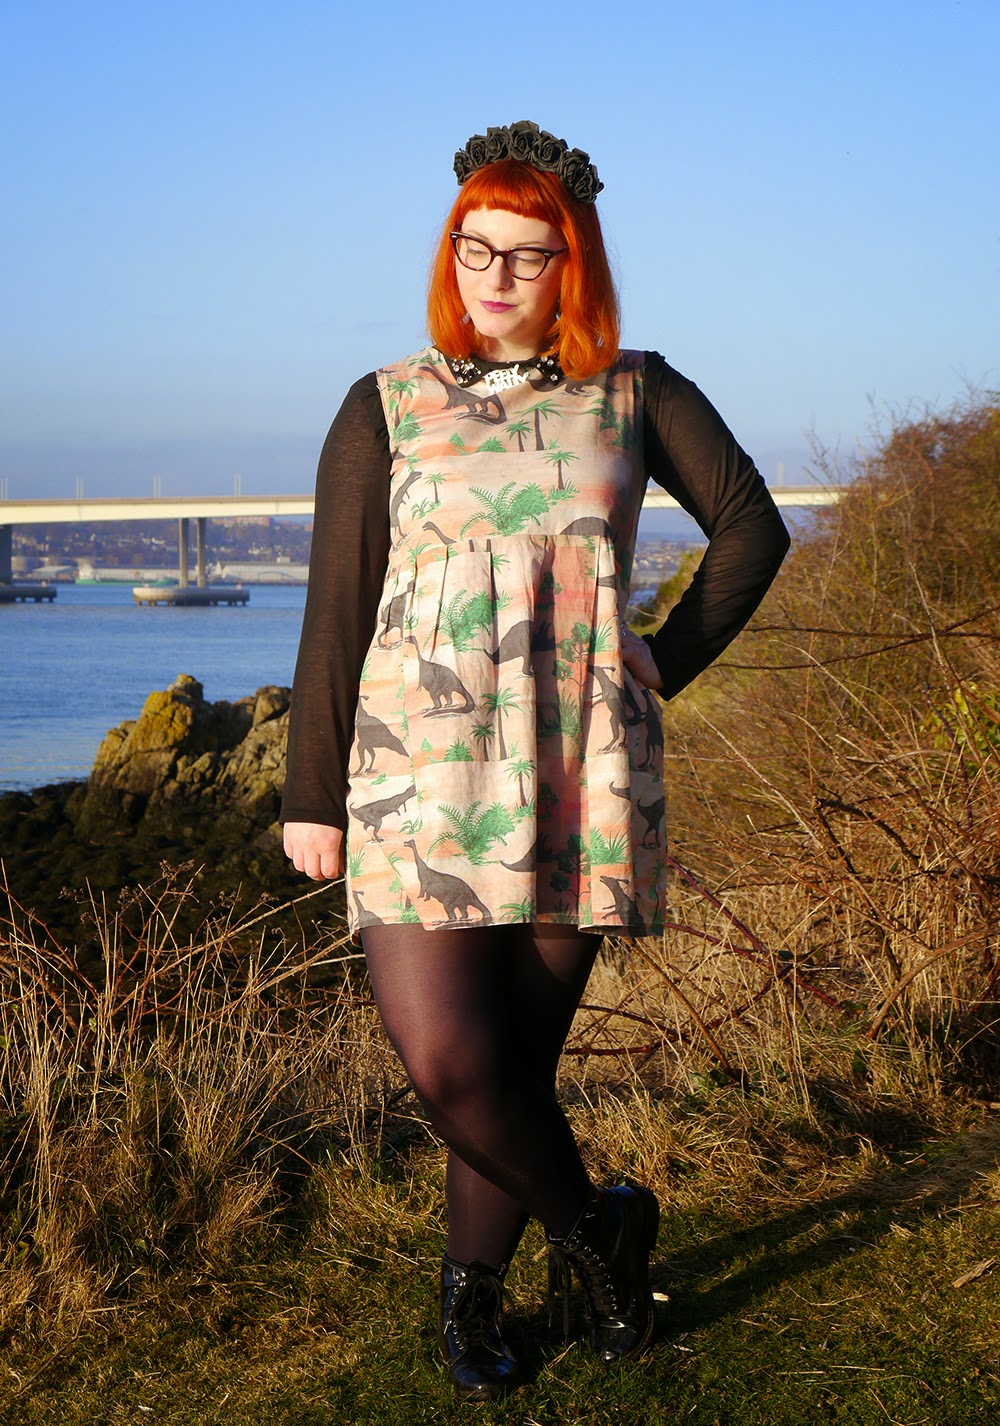 What Helen Wore, Valentine's Day, Adventures, Scottish Blogger, Crown and Glory Black Flower Headband, Bonnie Bling Scottish Sland Necklace, Vintage Style Me Dinosaur Dress, H and M Shirt